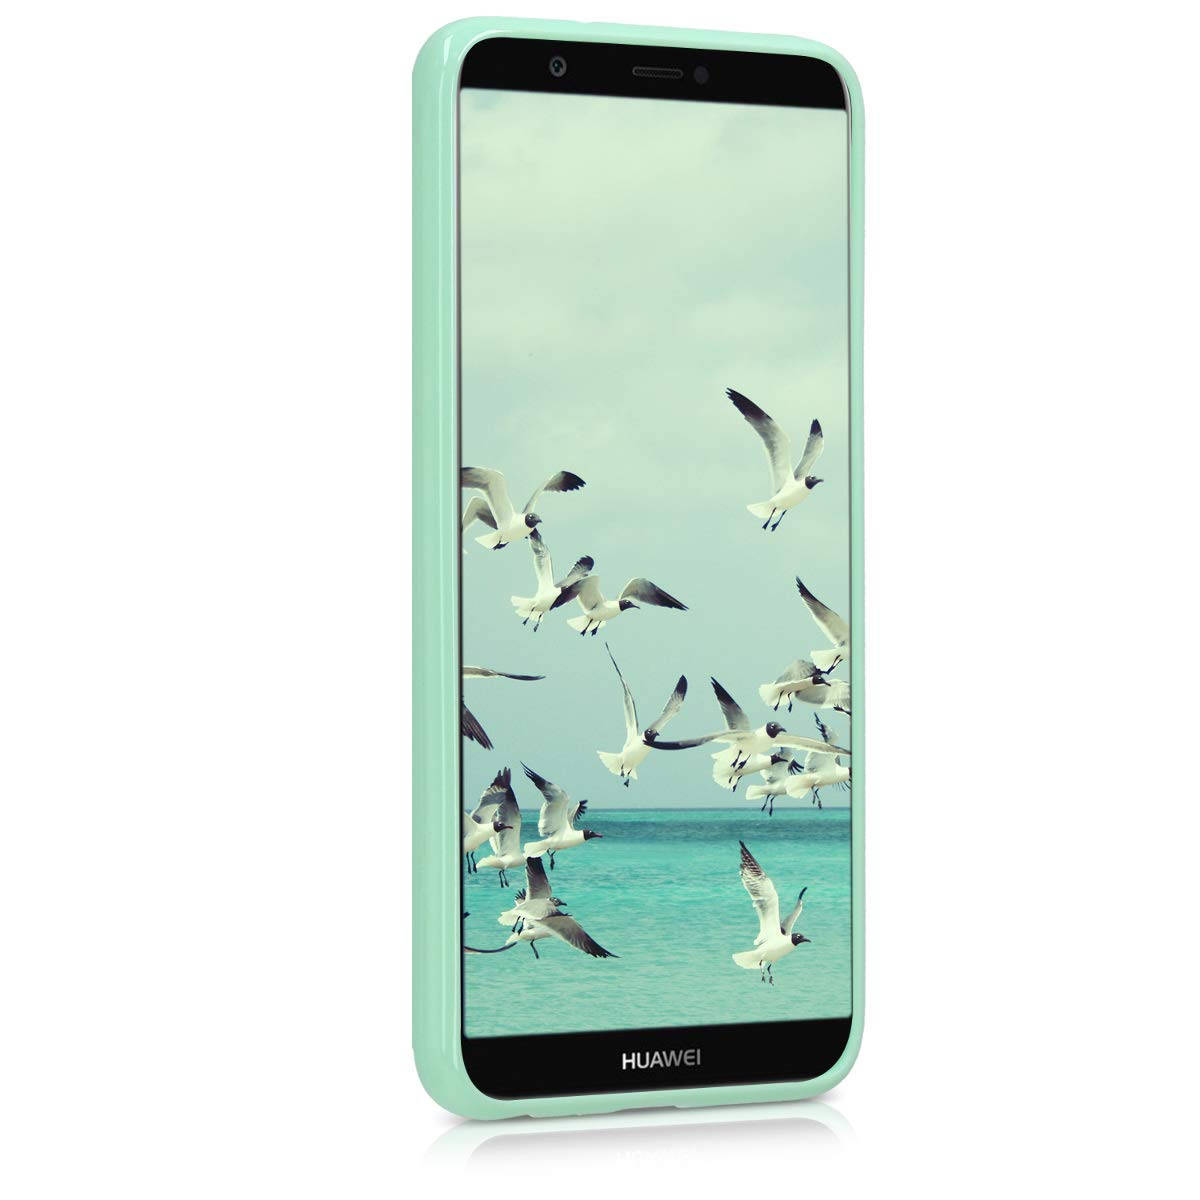 kwmobile TPU Silicone Case for Huawei Enjoy 7S / P Smart - Soft Flexible Shock Absorbent Protective Phone Cover - Mint Matte